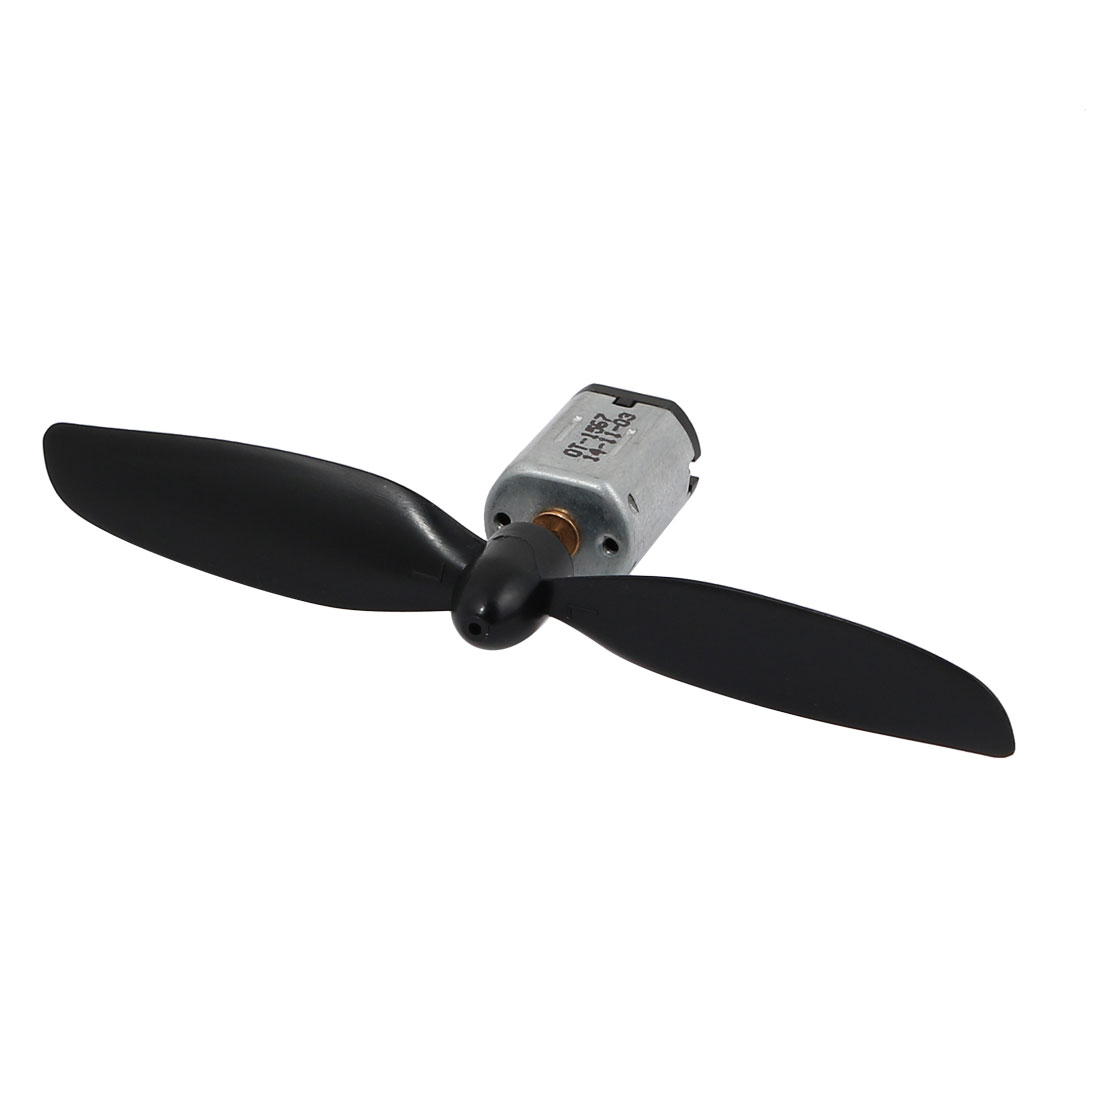 DC 3.7V 24000RPM N20 High Speed Strong Magnetic Motor w Helicopter CCW Propeller